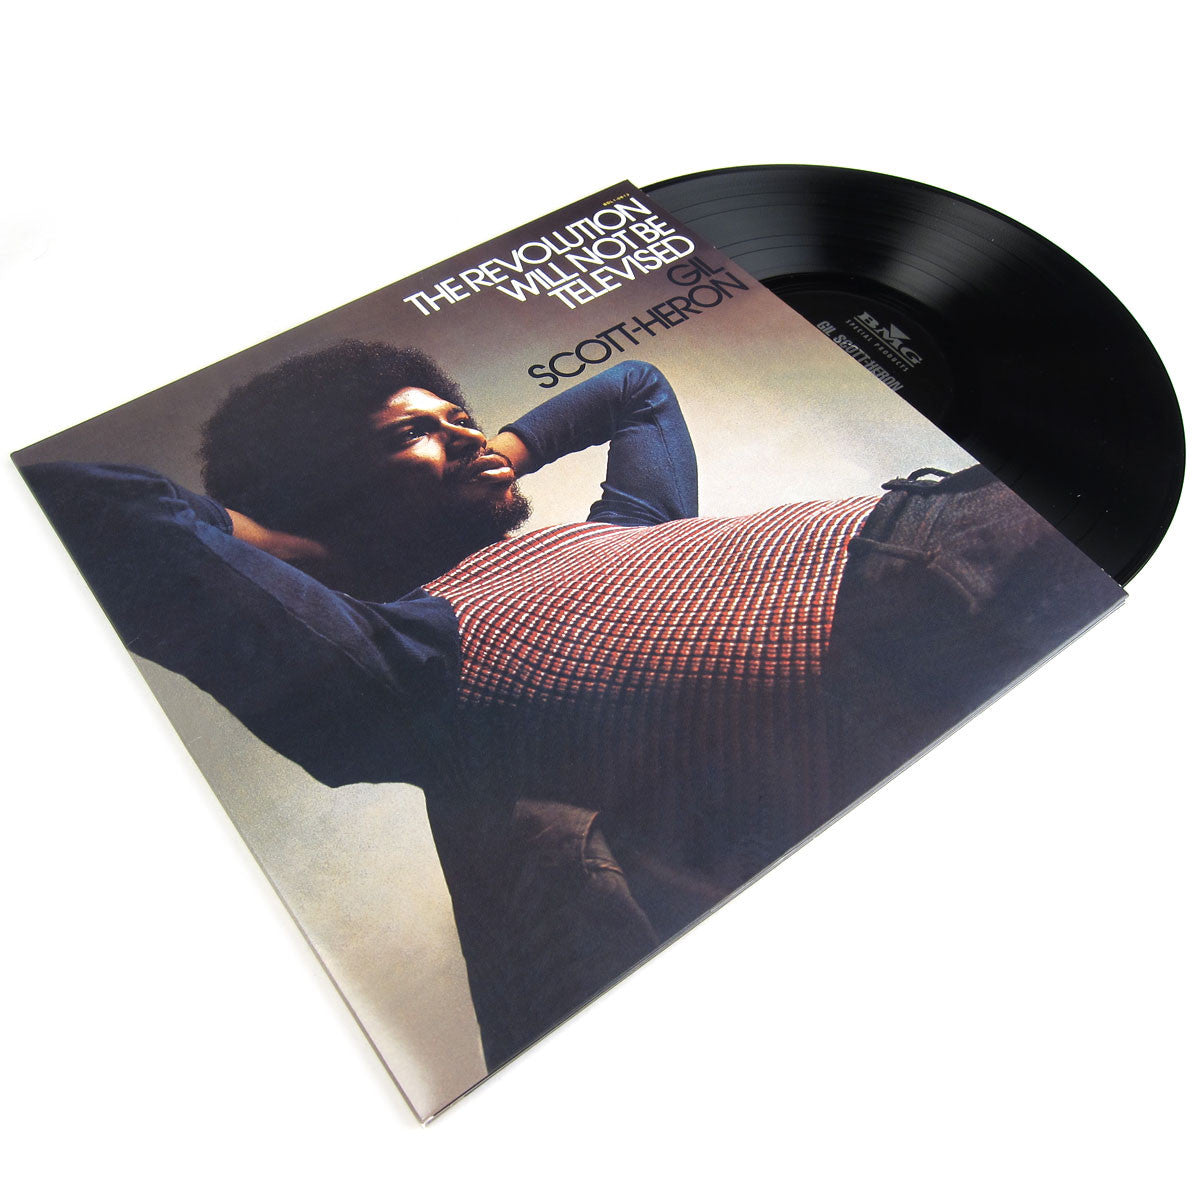 Gil Scott-Heron: The Revolution Will Not Be Televised Vinyl LP